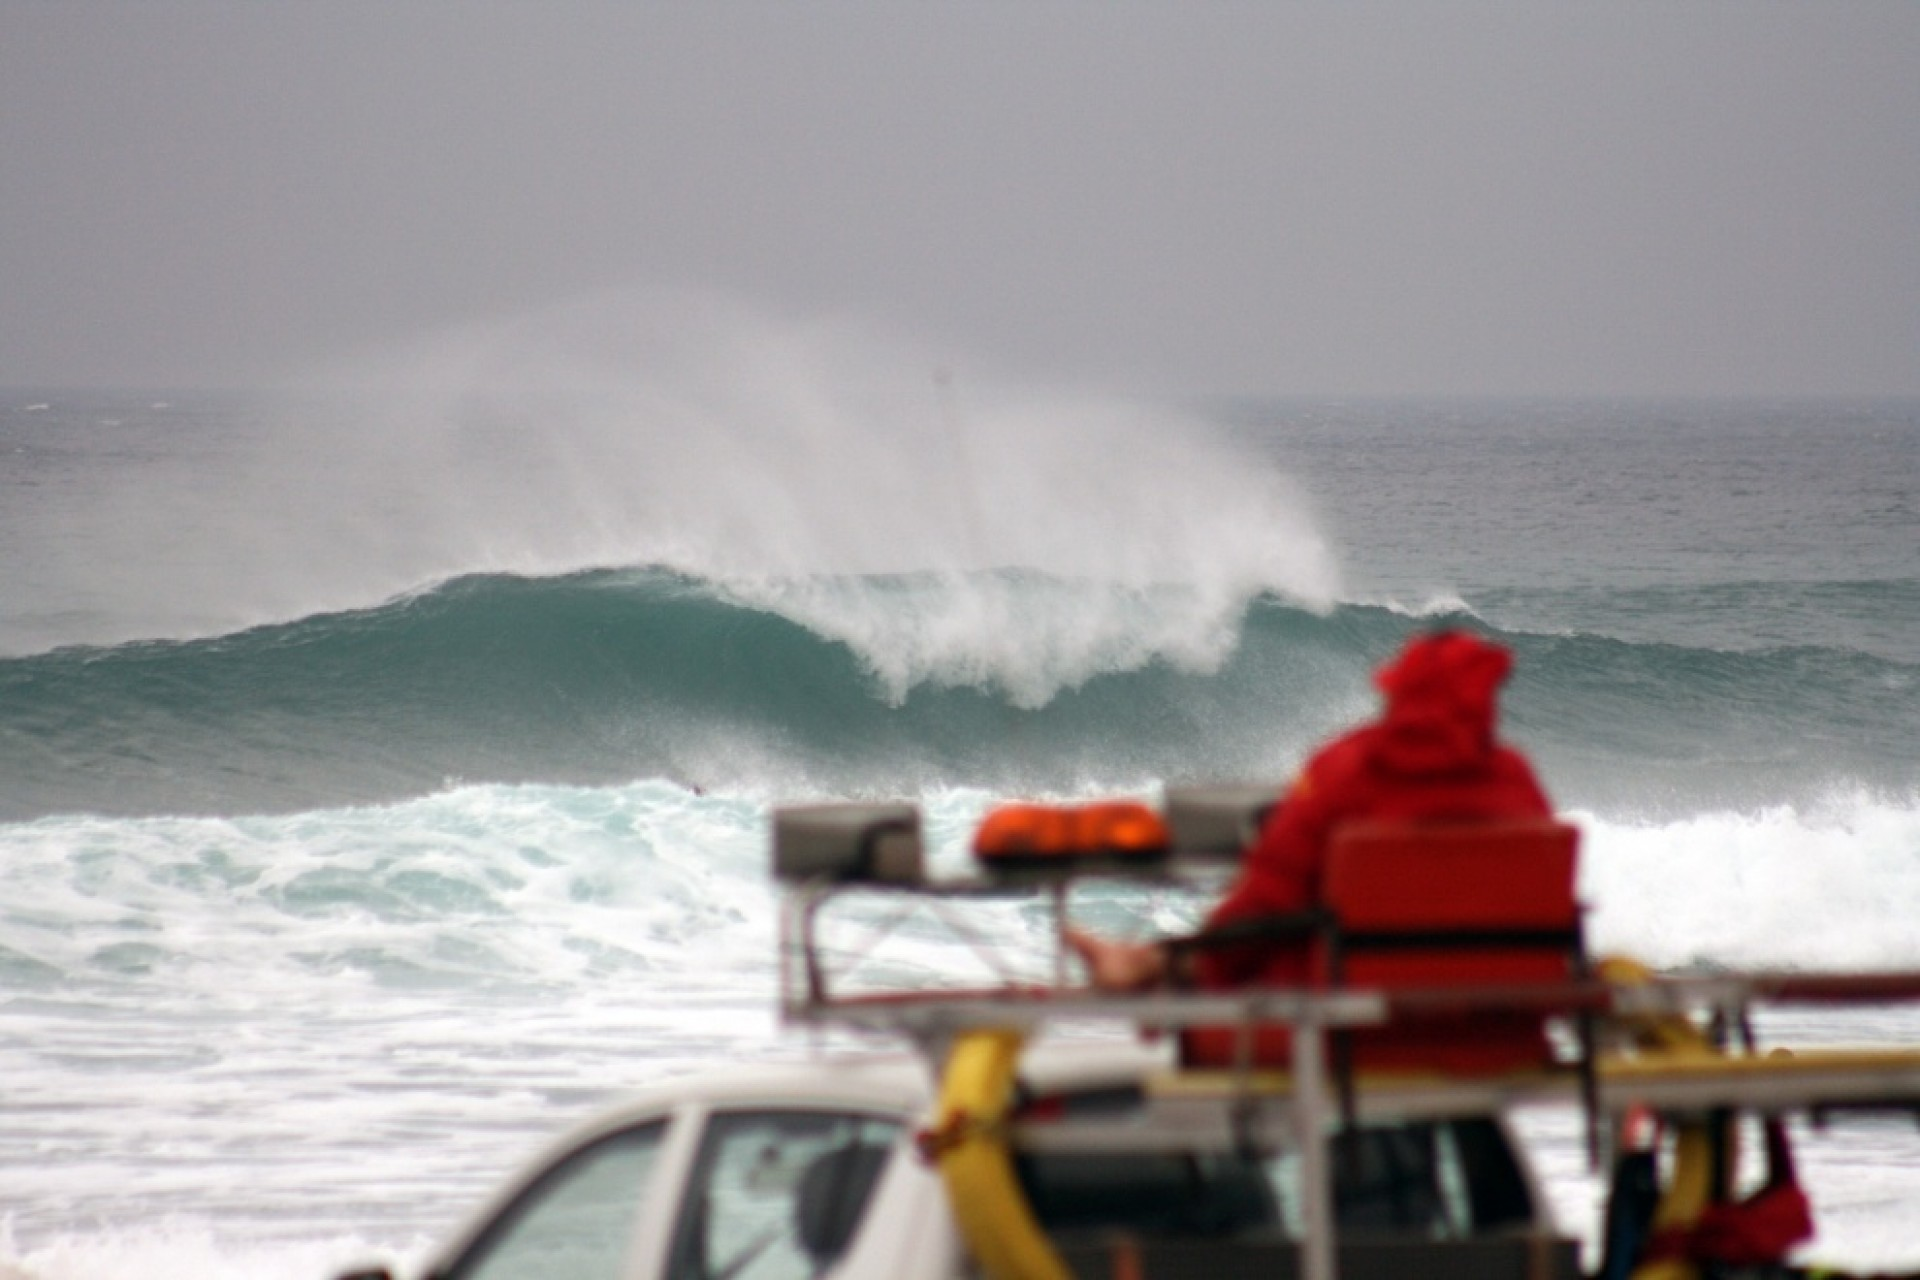 Lukes Surf Photos's photo of Porthtowan